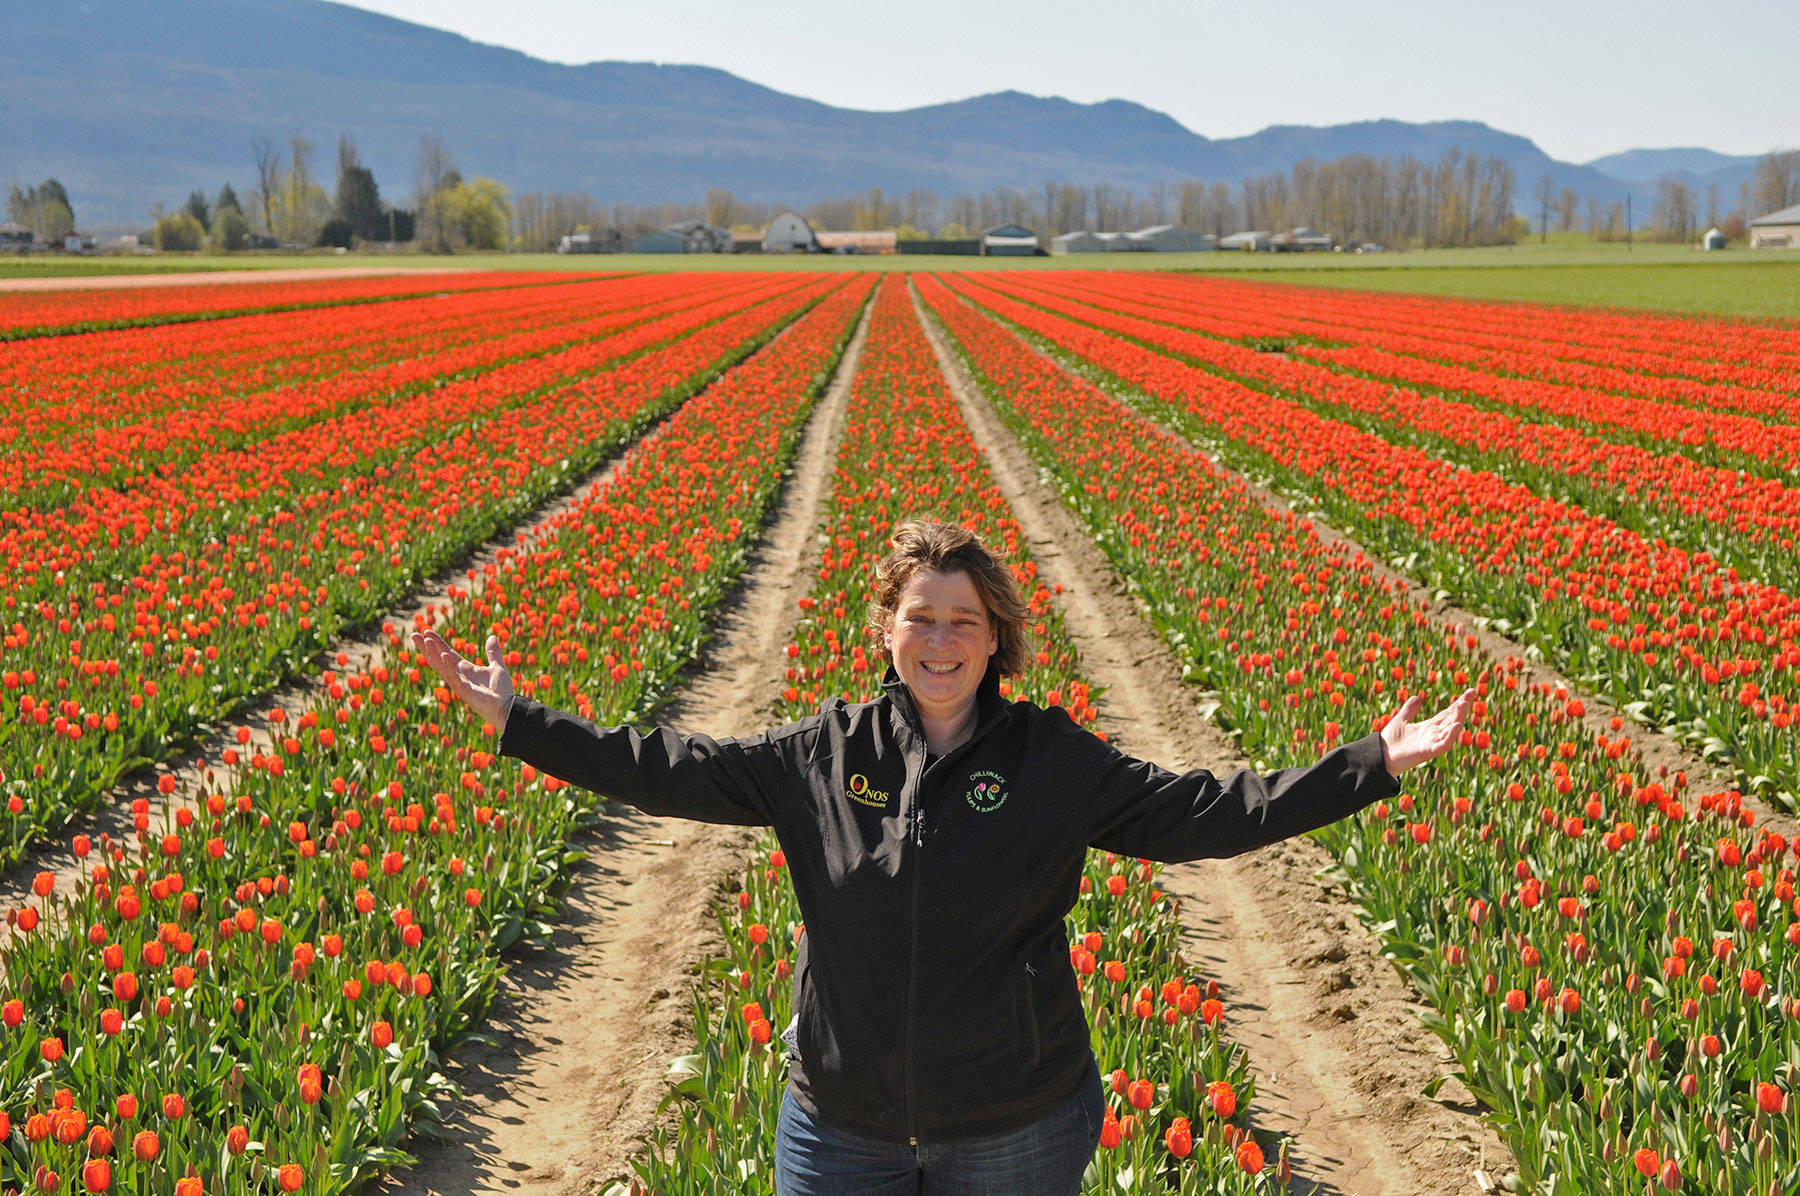 Kate Onos-Gilbert, founder of Chilliwack Tulips, is welcoming Fraser Valley residents to come see some of the 6.5 million bulbs that were planted at her farm in Chilliwack. (Jenna Hauck/ Chilliwack Progress)